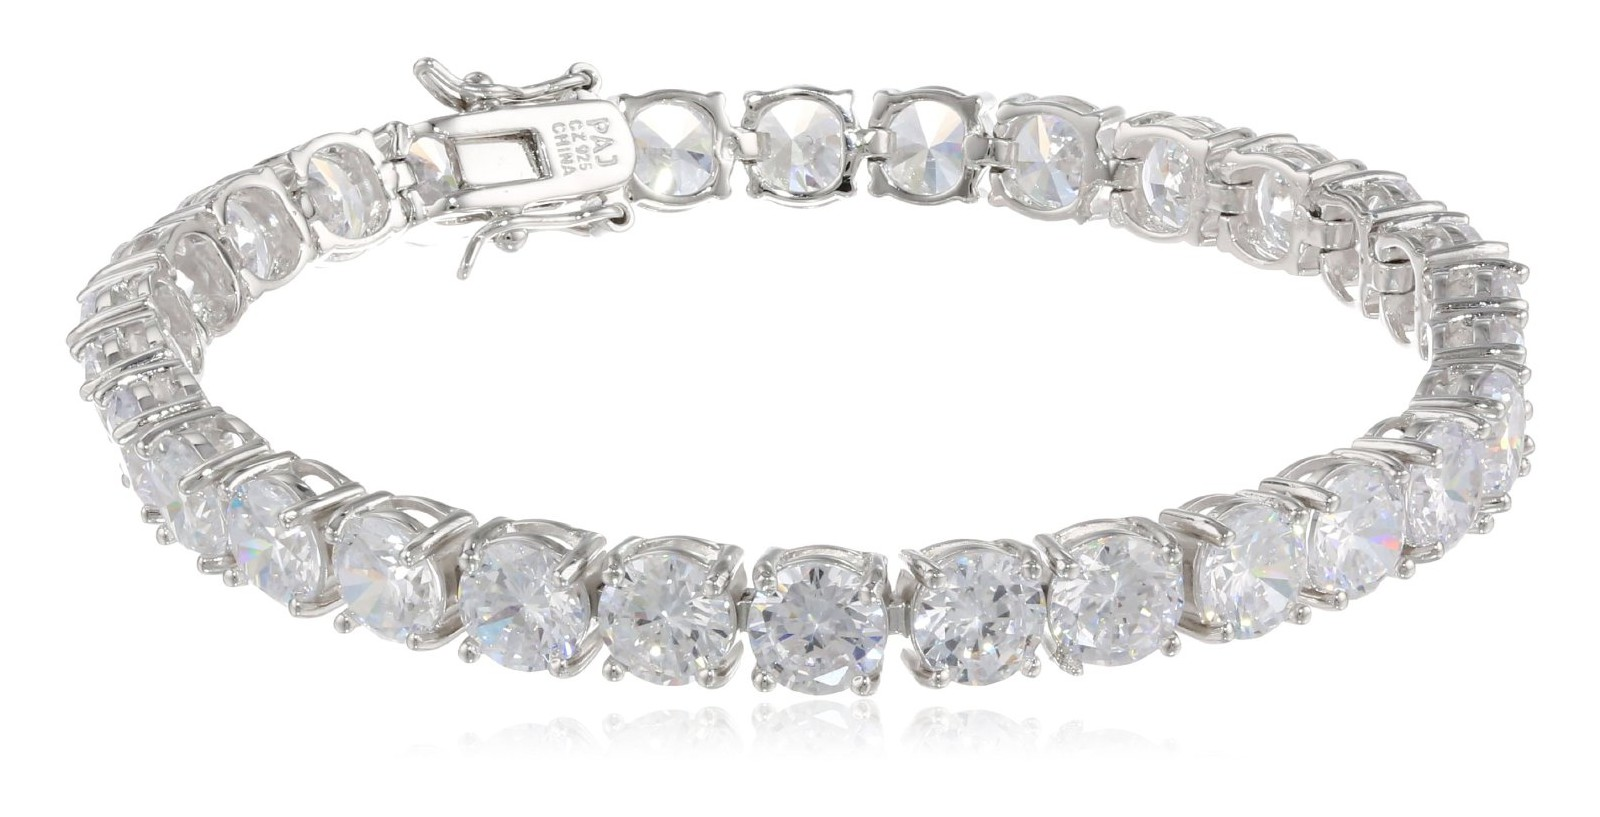 Sterling Silver And Round Cut Cubic Zirconia Tennis Bracelet 7 25 Visuall Co